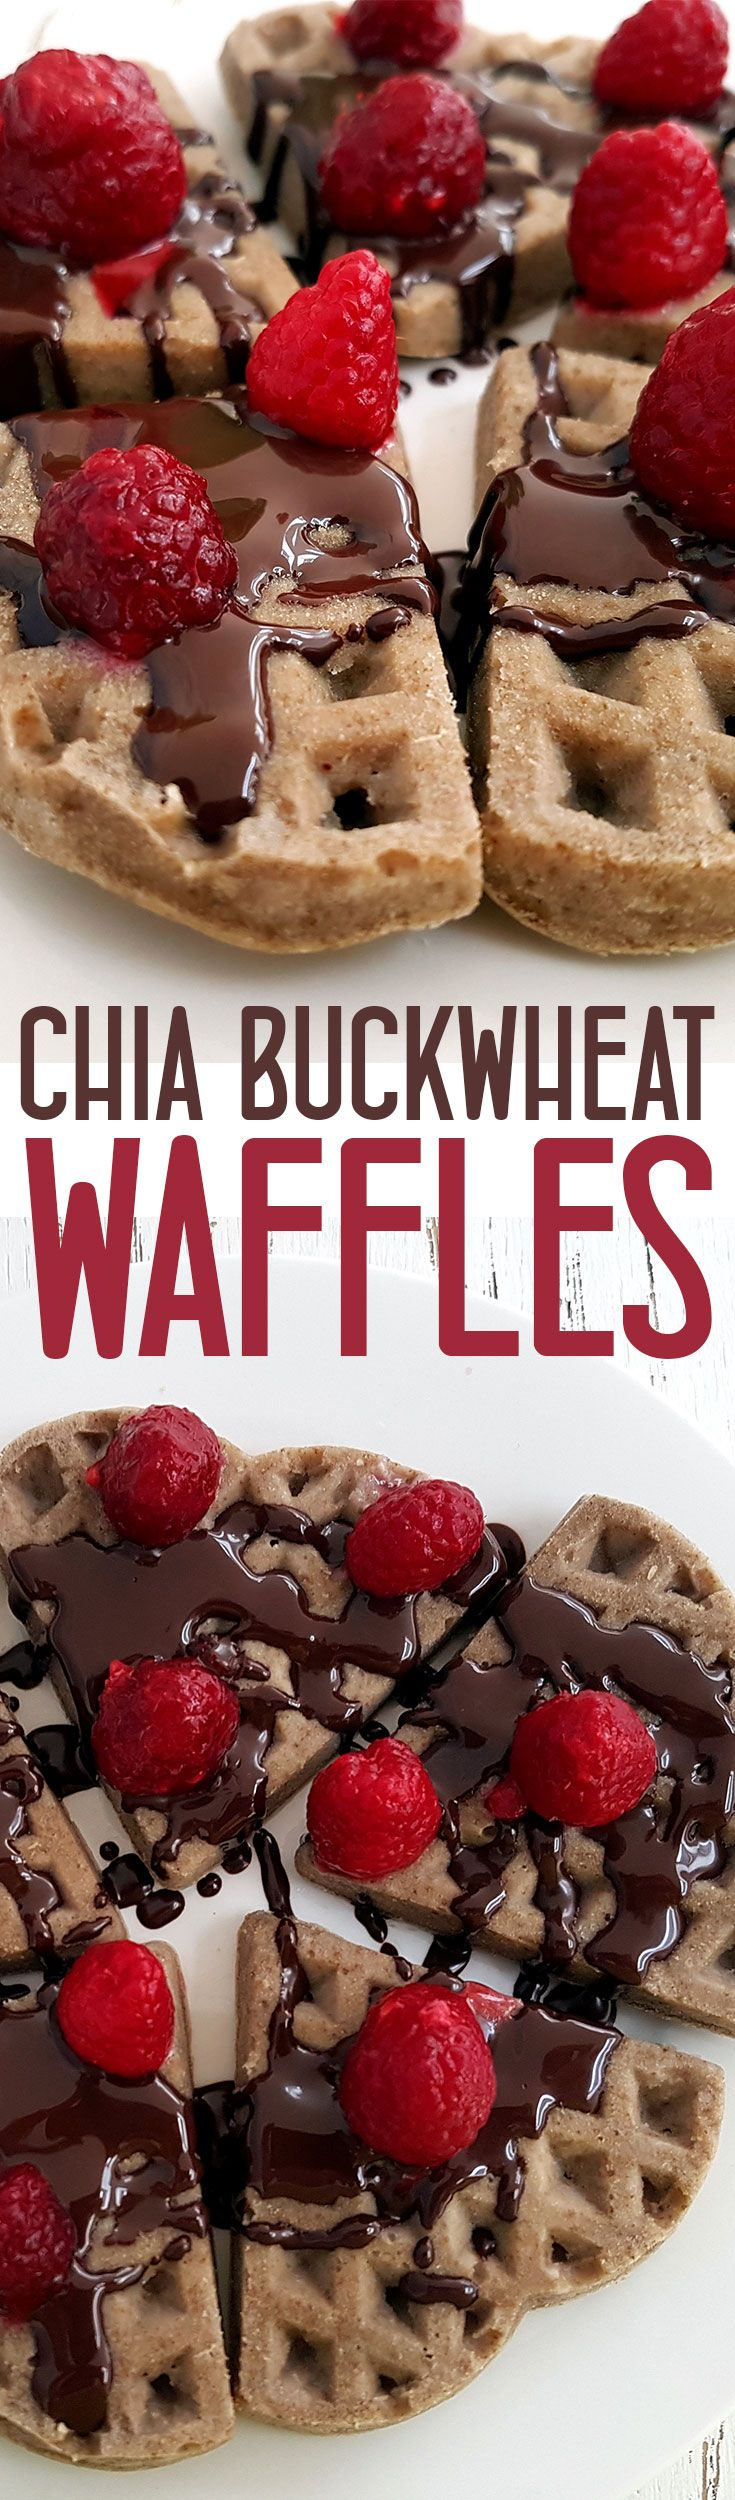 Chia Buckwheat Waffles with Berries and Chocolate - Vegan and gluten free via @nestandglow